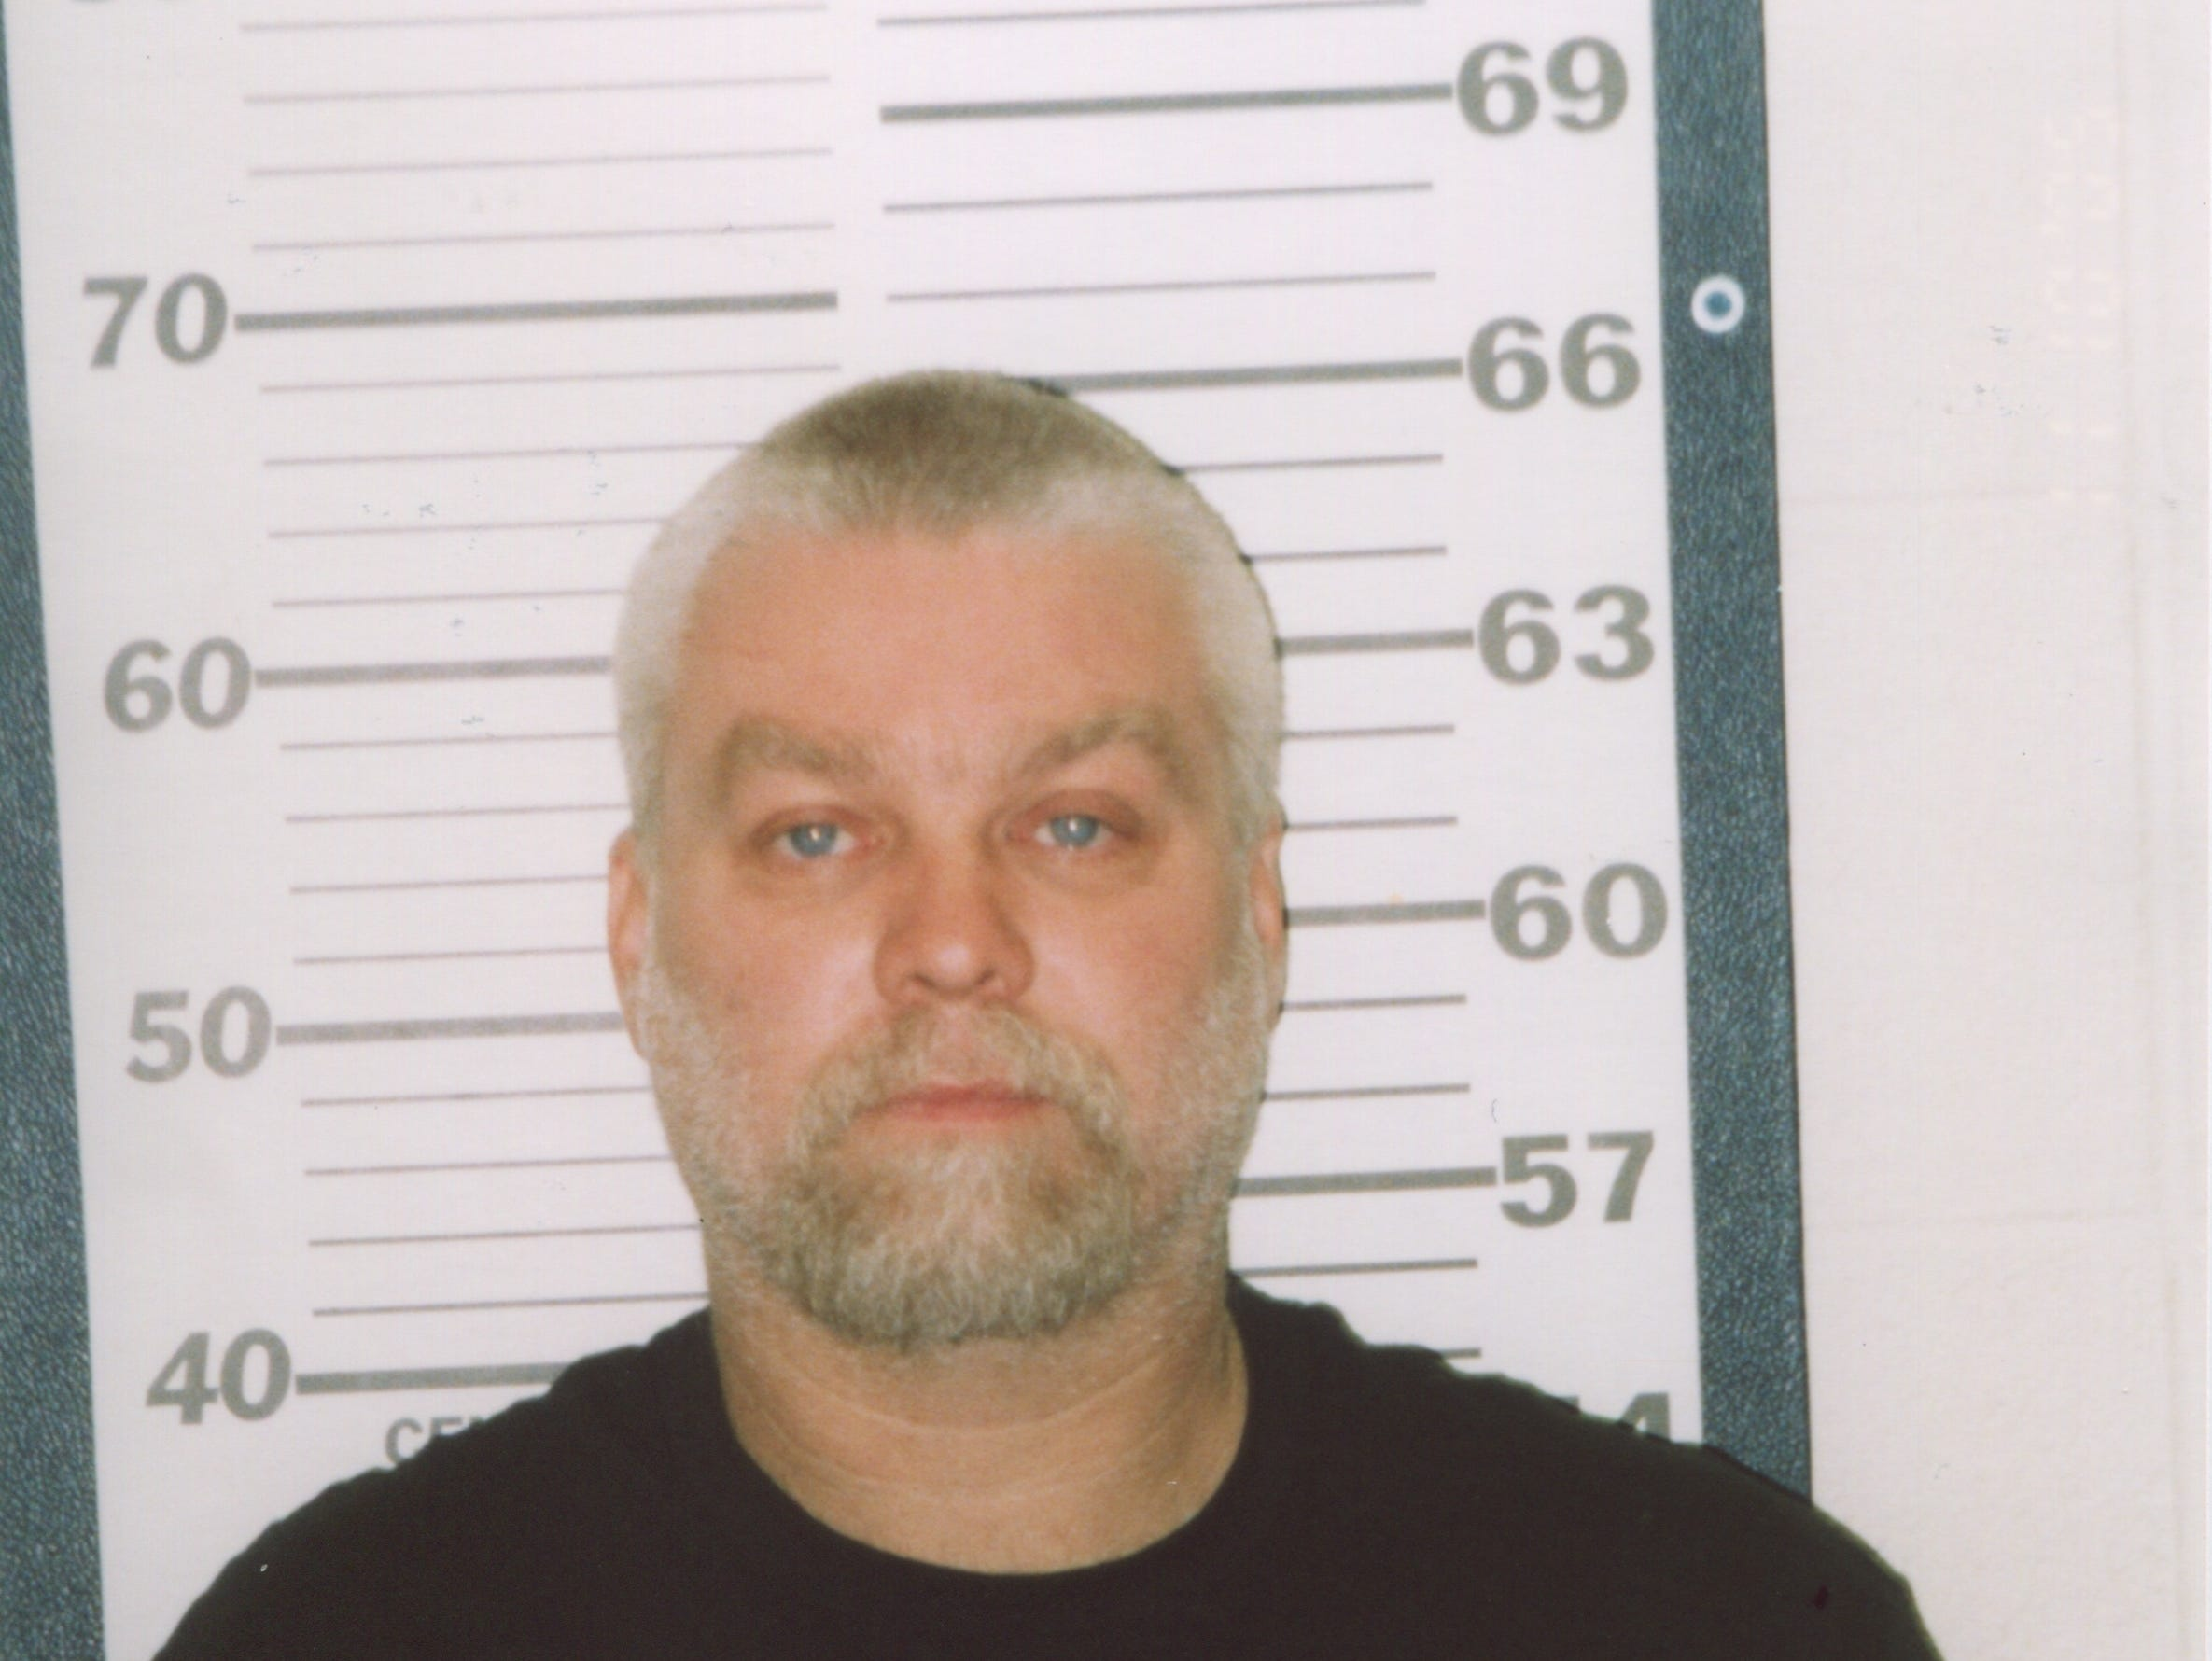 "Steven Avery, the subject of Netflix's ""Making a Murderer,"" spent 18 years in prison after wrongfully being convicted only to be charged with murder after his release. The original series examining the case was released by Netflix in 2015 with a second 10-episode series following up on Avery that aired in 2018."